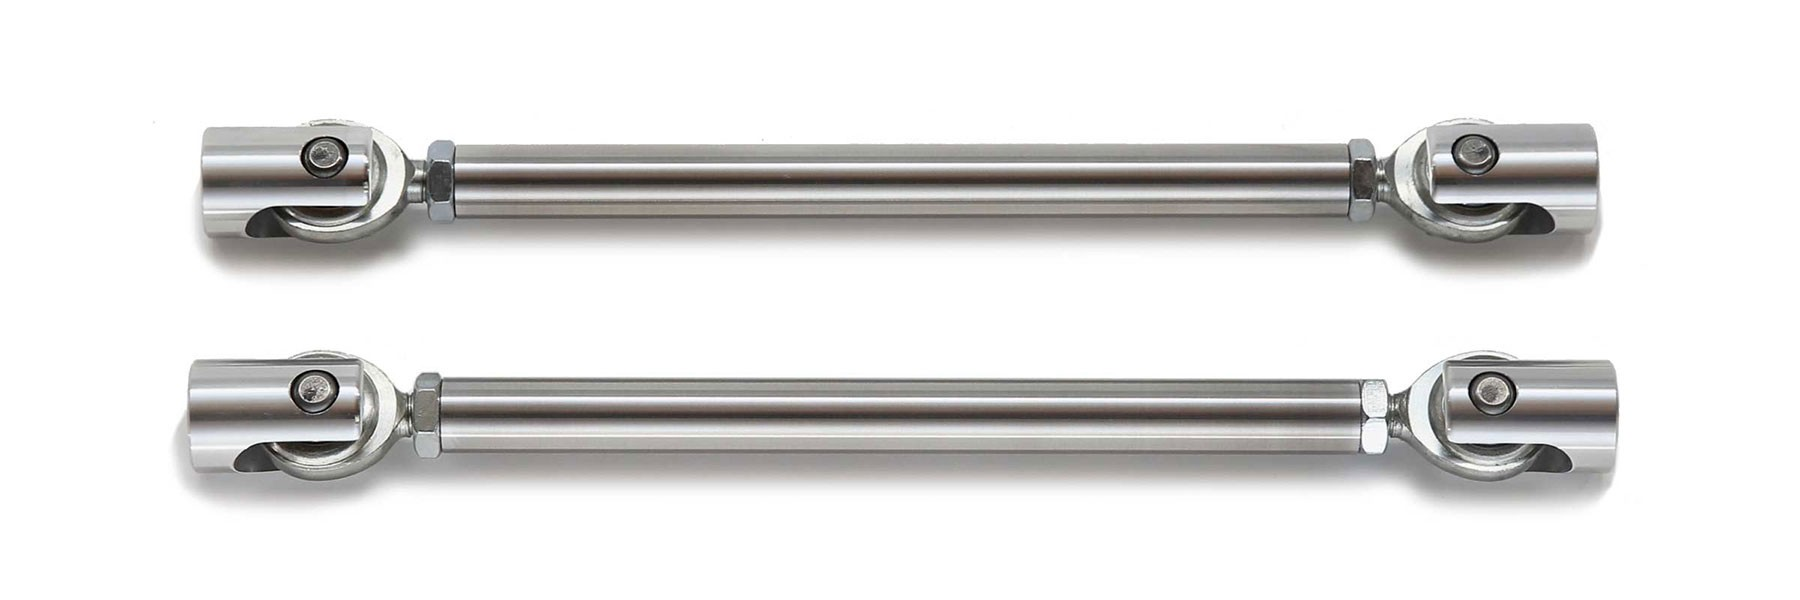 Adjustable Splitter Support Rod (Pair)